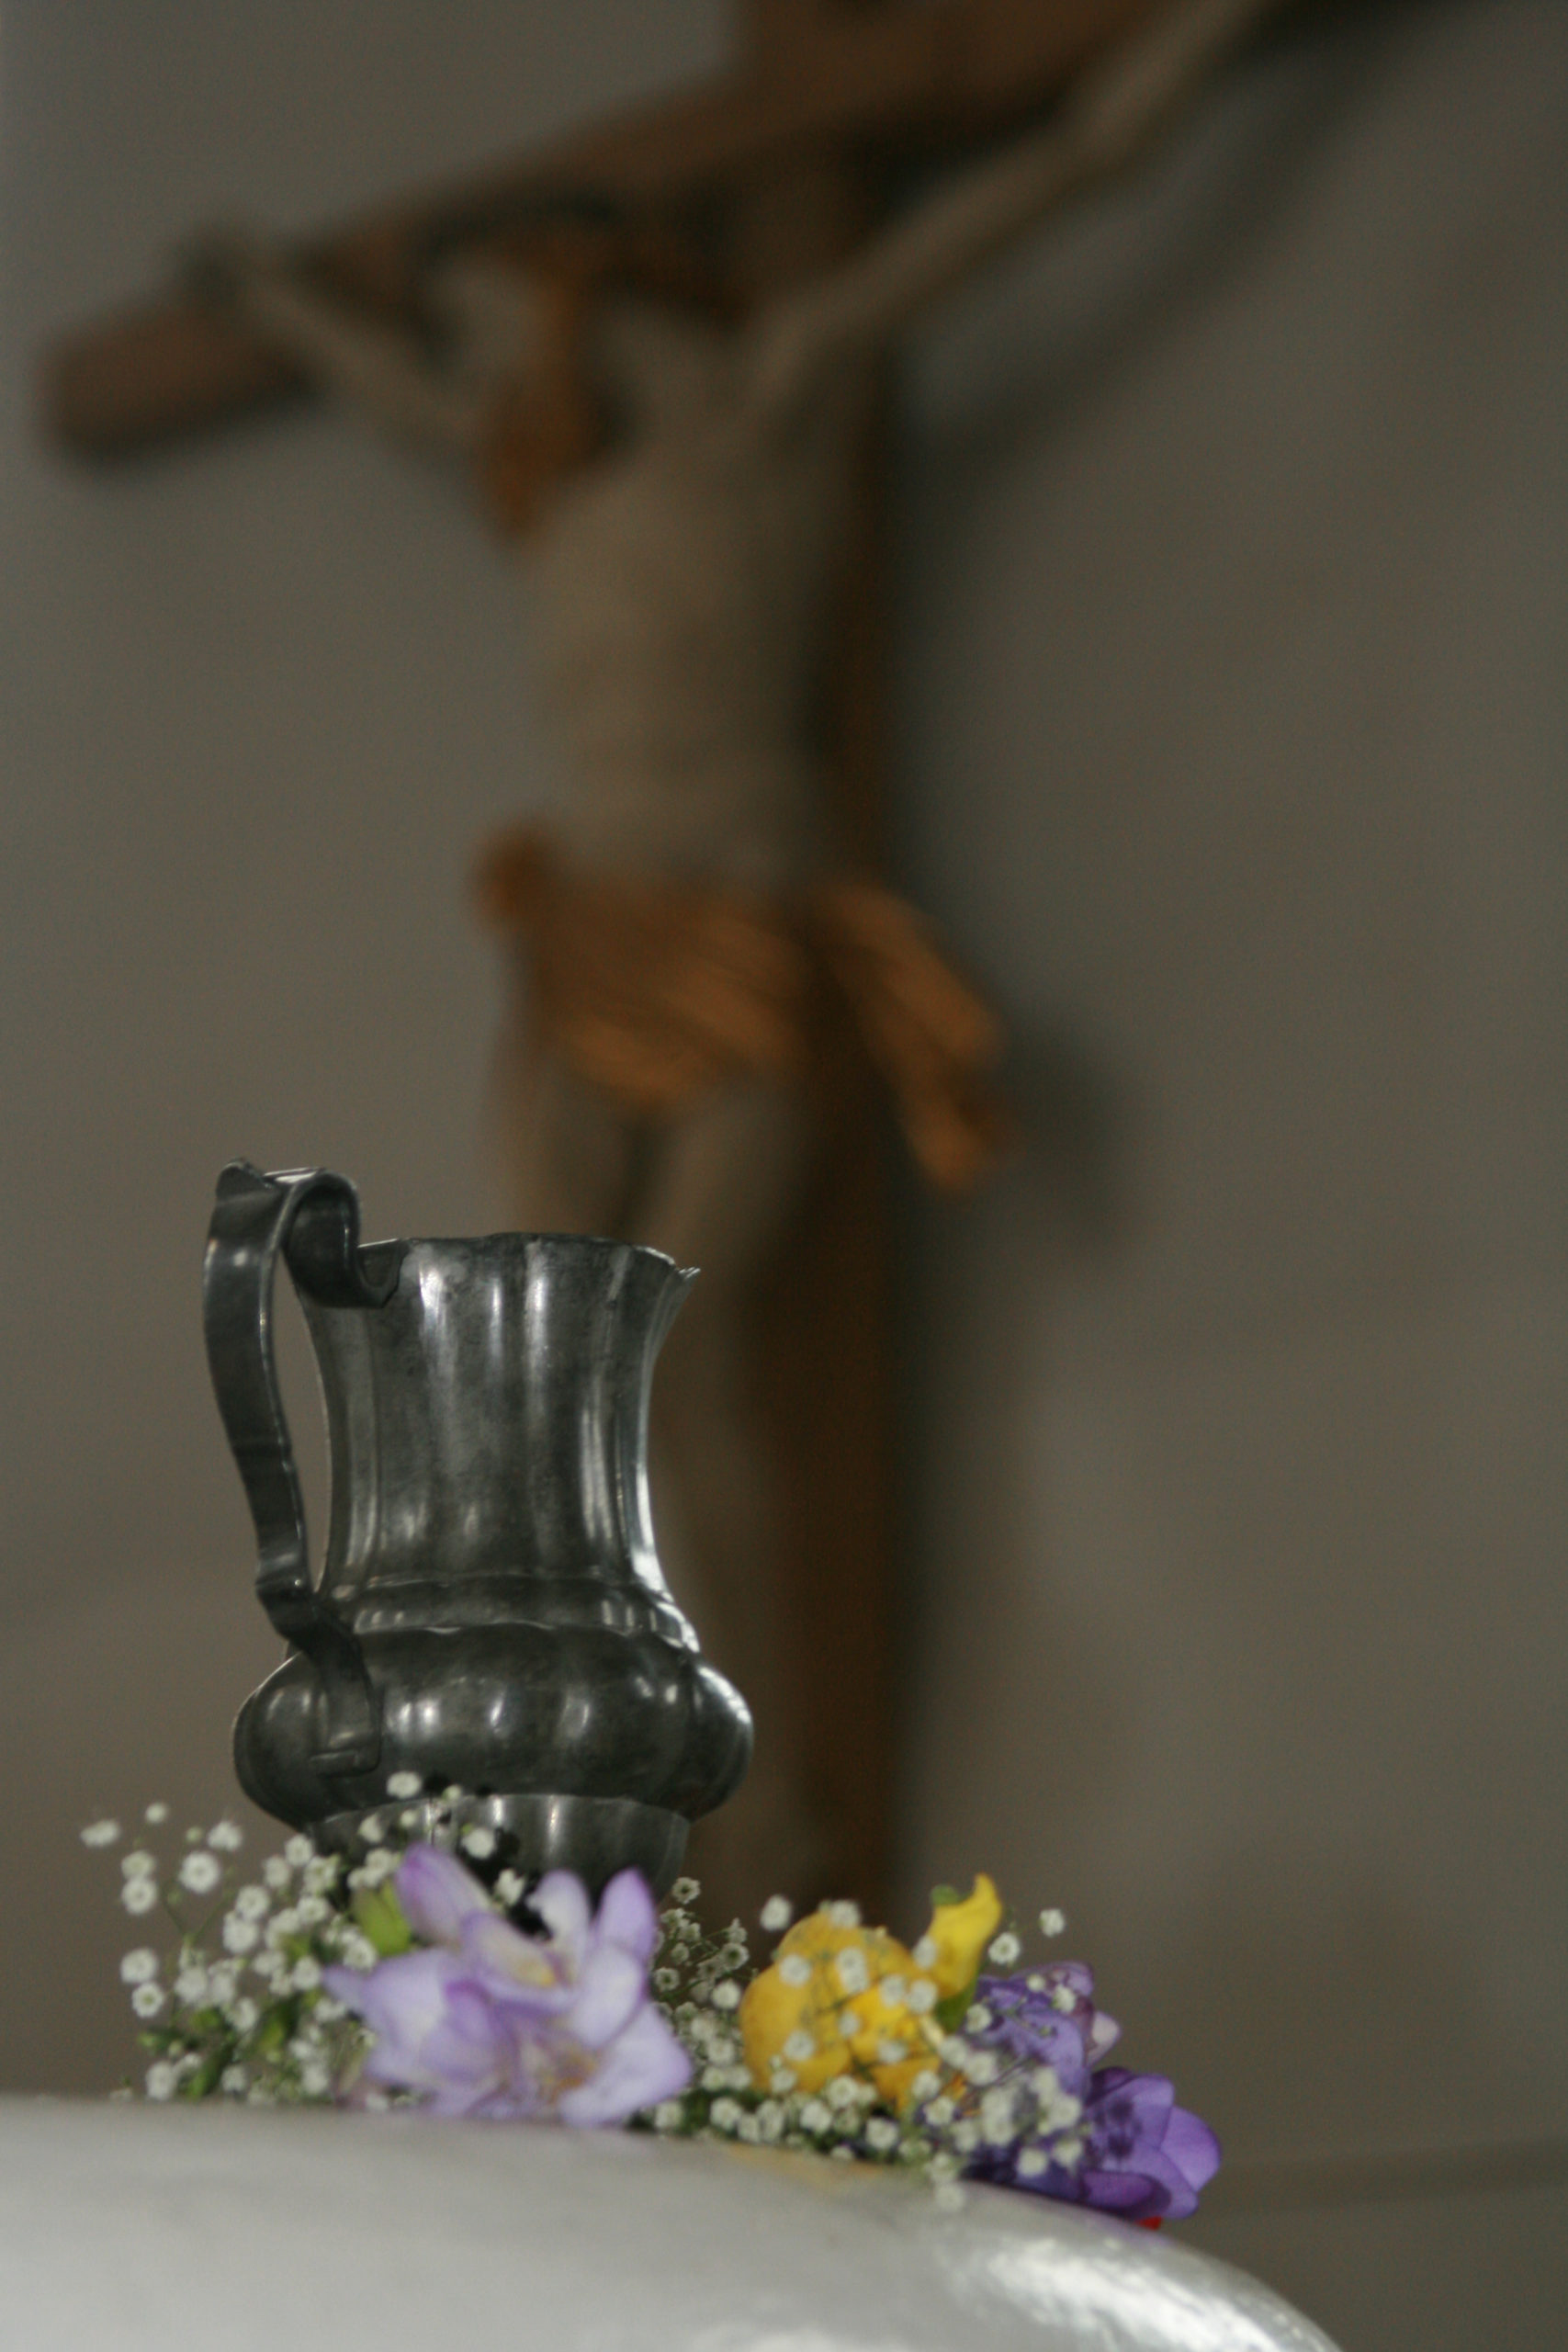 baptism-stone with flowers and water cup - in the background the jesus - vision? Uploaded byforst747 sxc hu